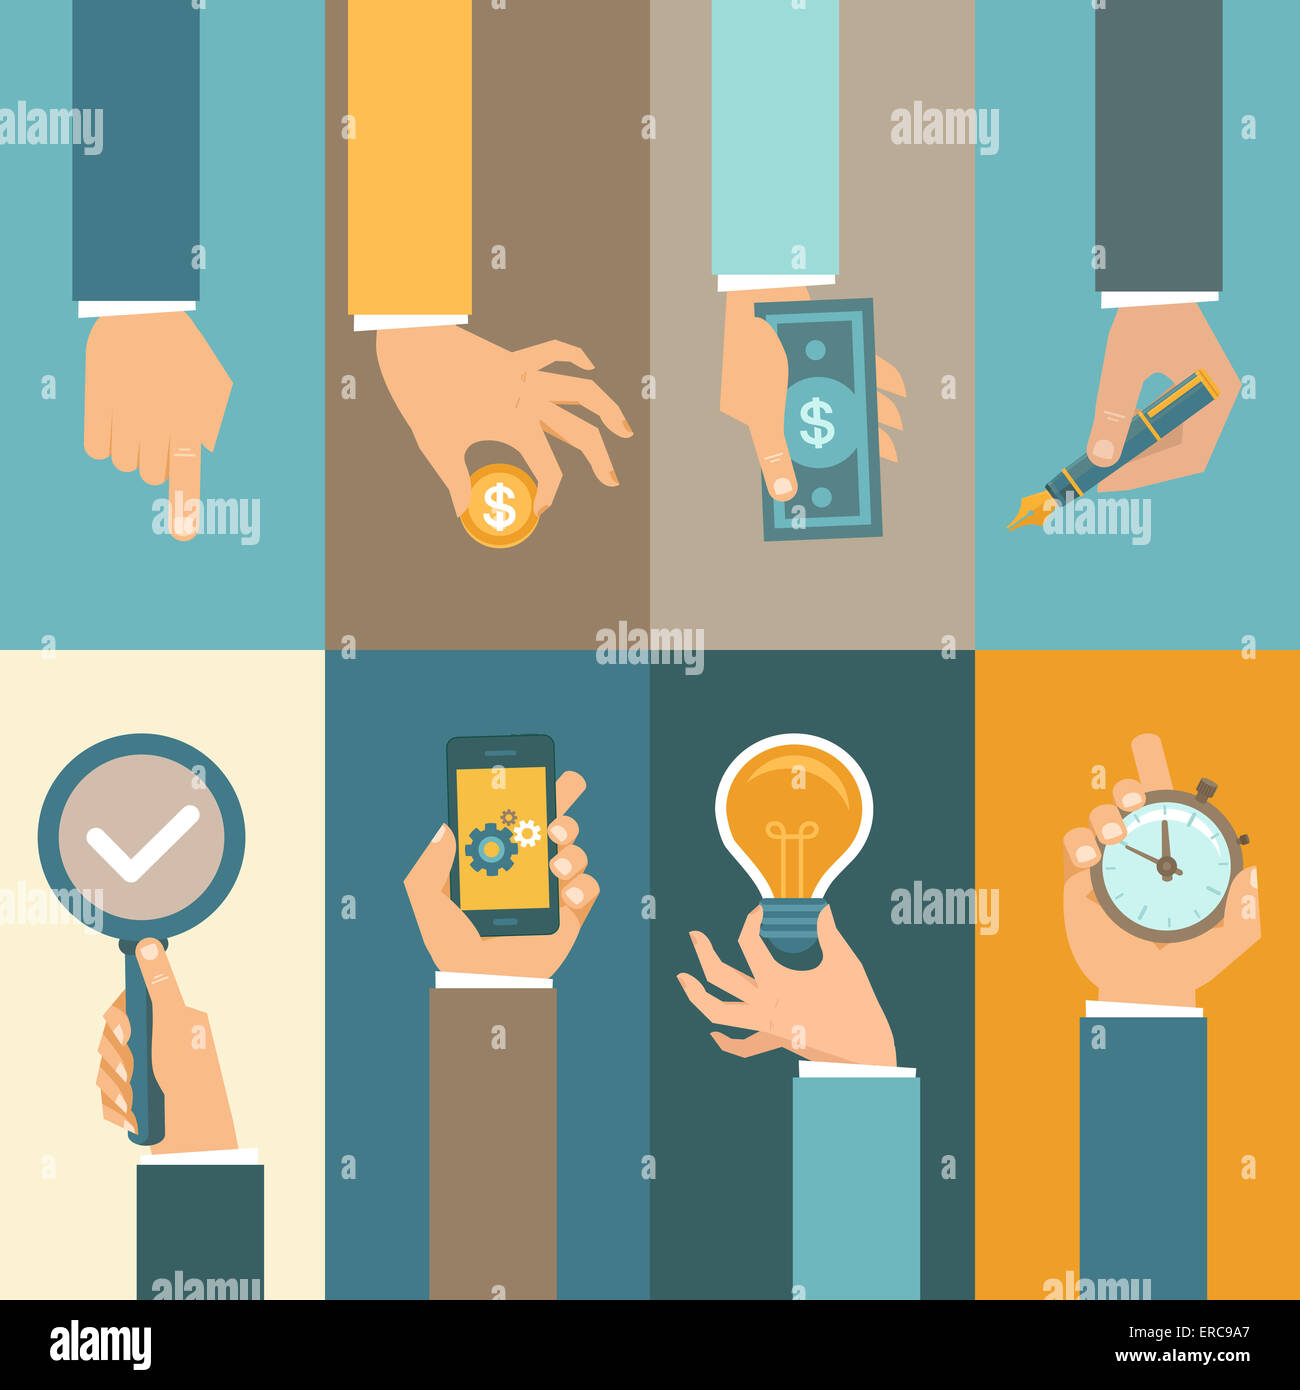 Business concepts in flat style - hands icons - Stock Image